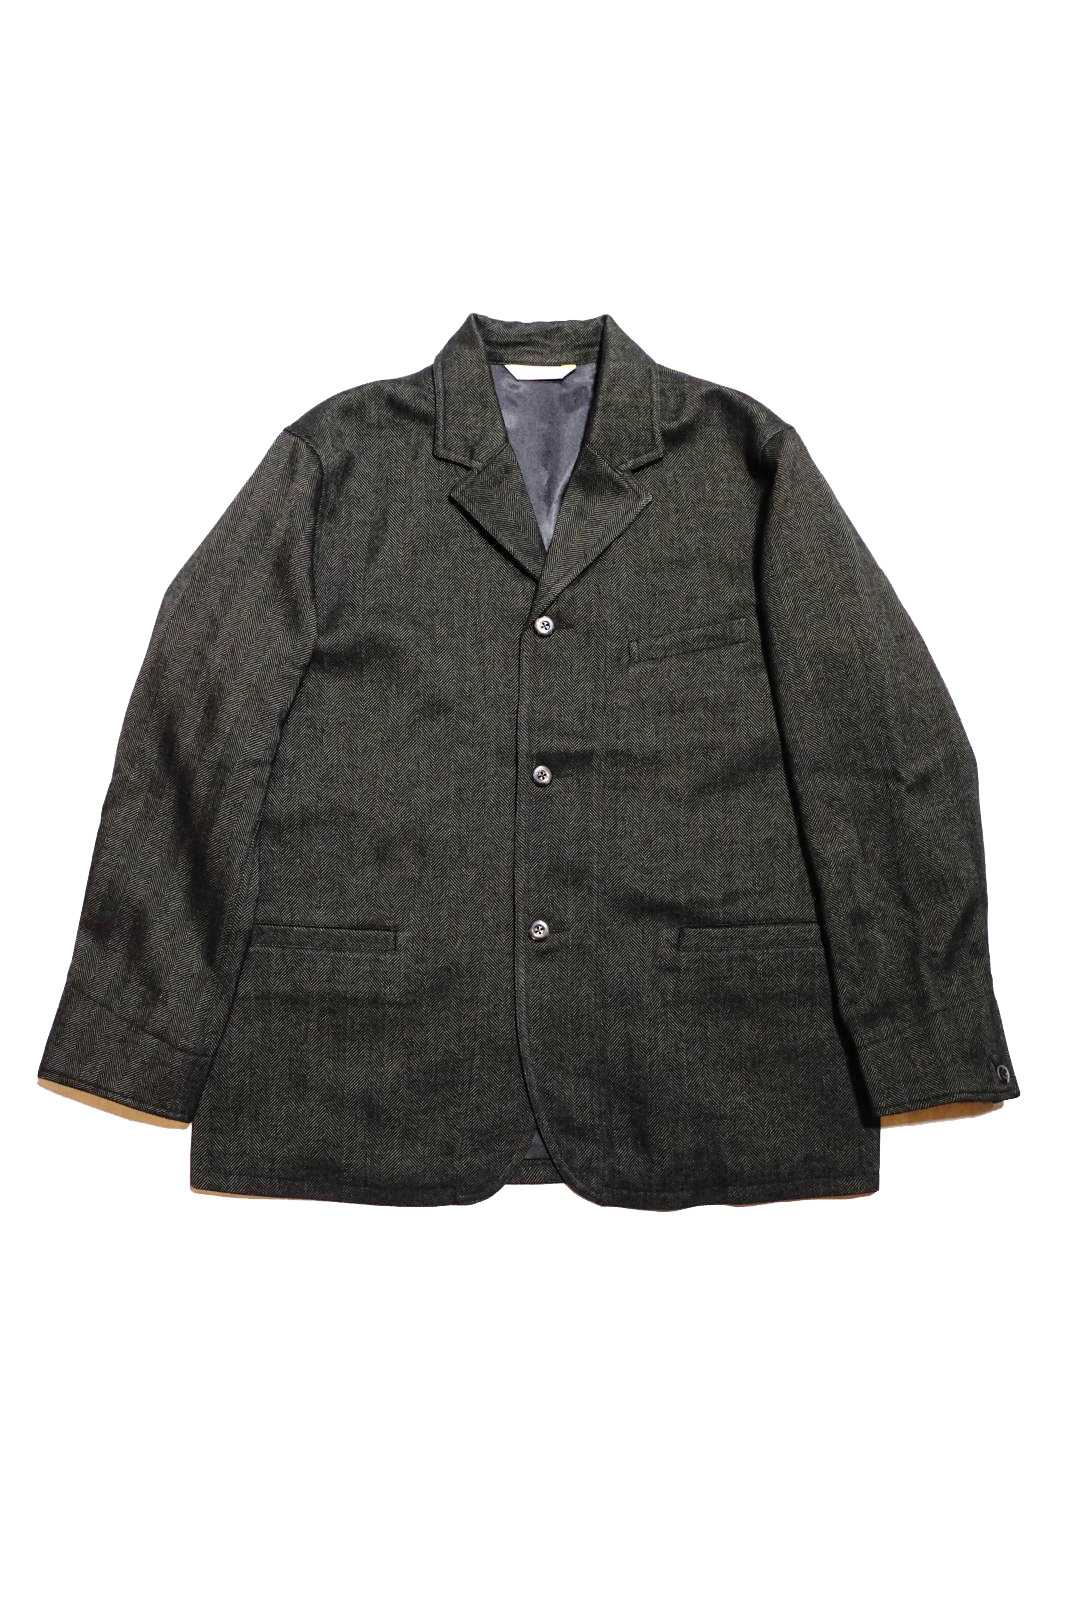 ANDFAMILYS CO. WOOLY TWEED HERRINGBONE JACKET MG